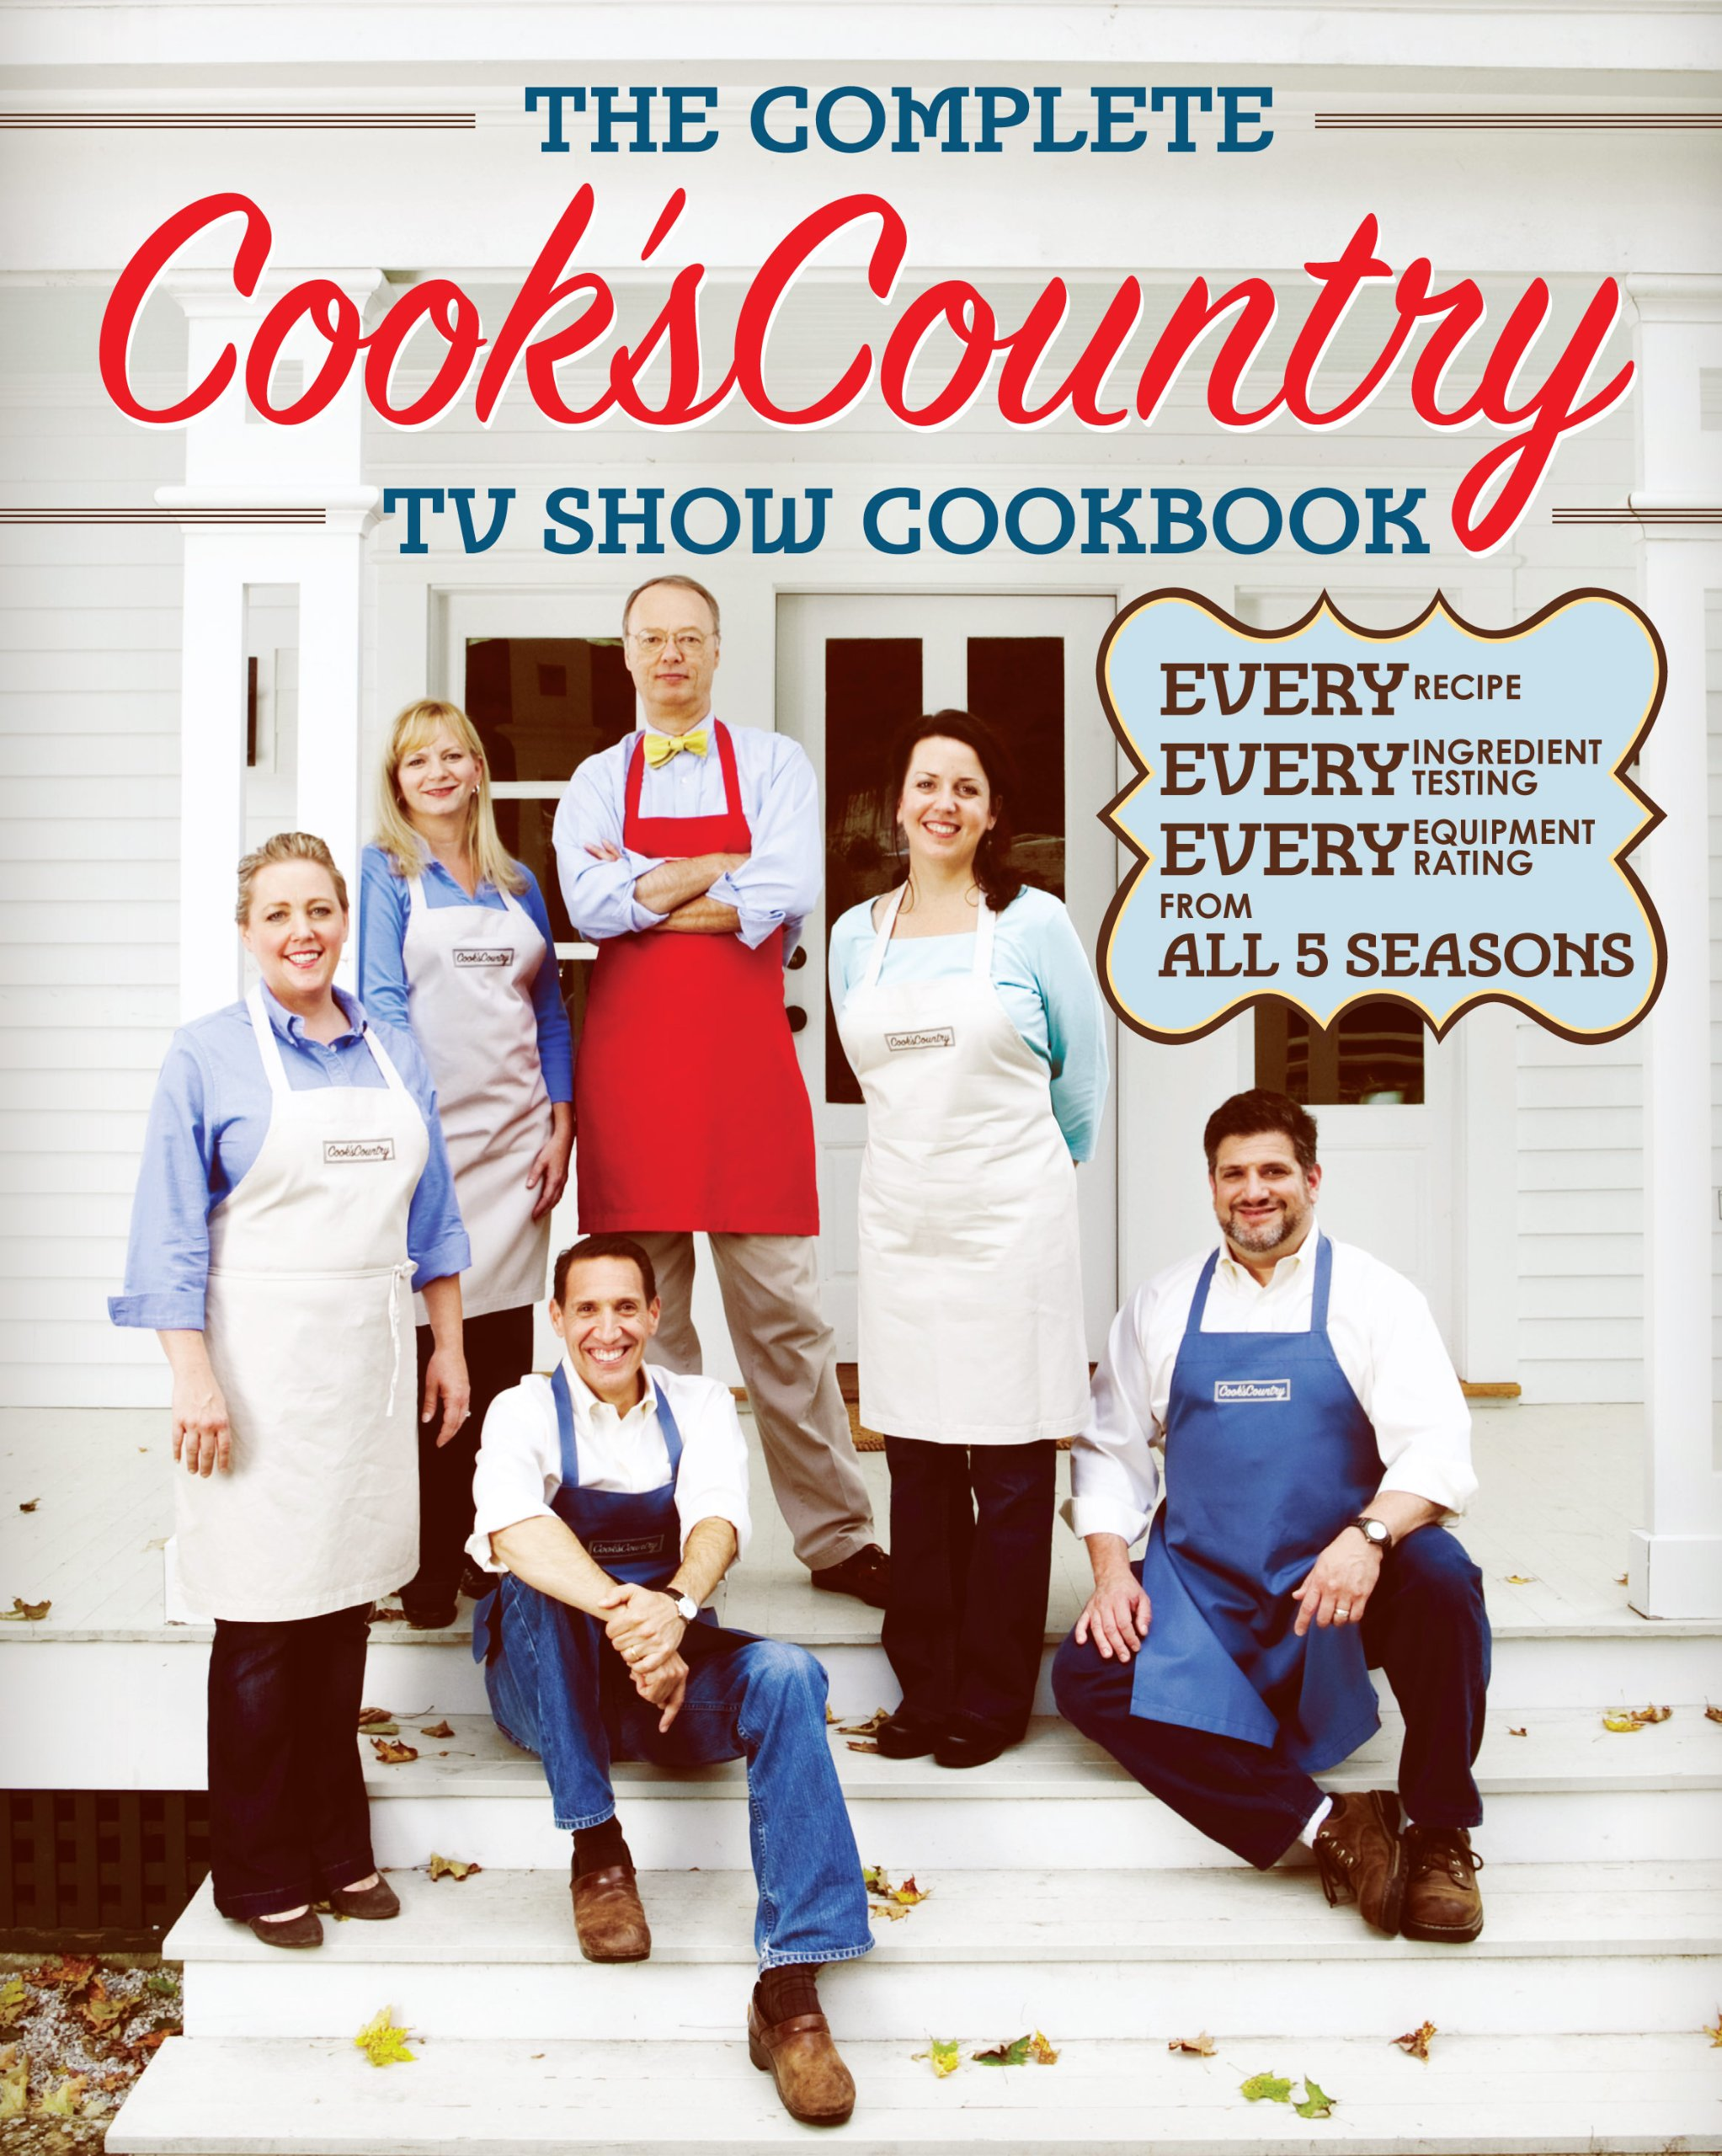 The plete Cook s Country TV Show Cookbook Editors at Cook s